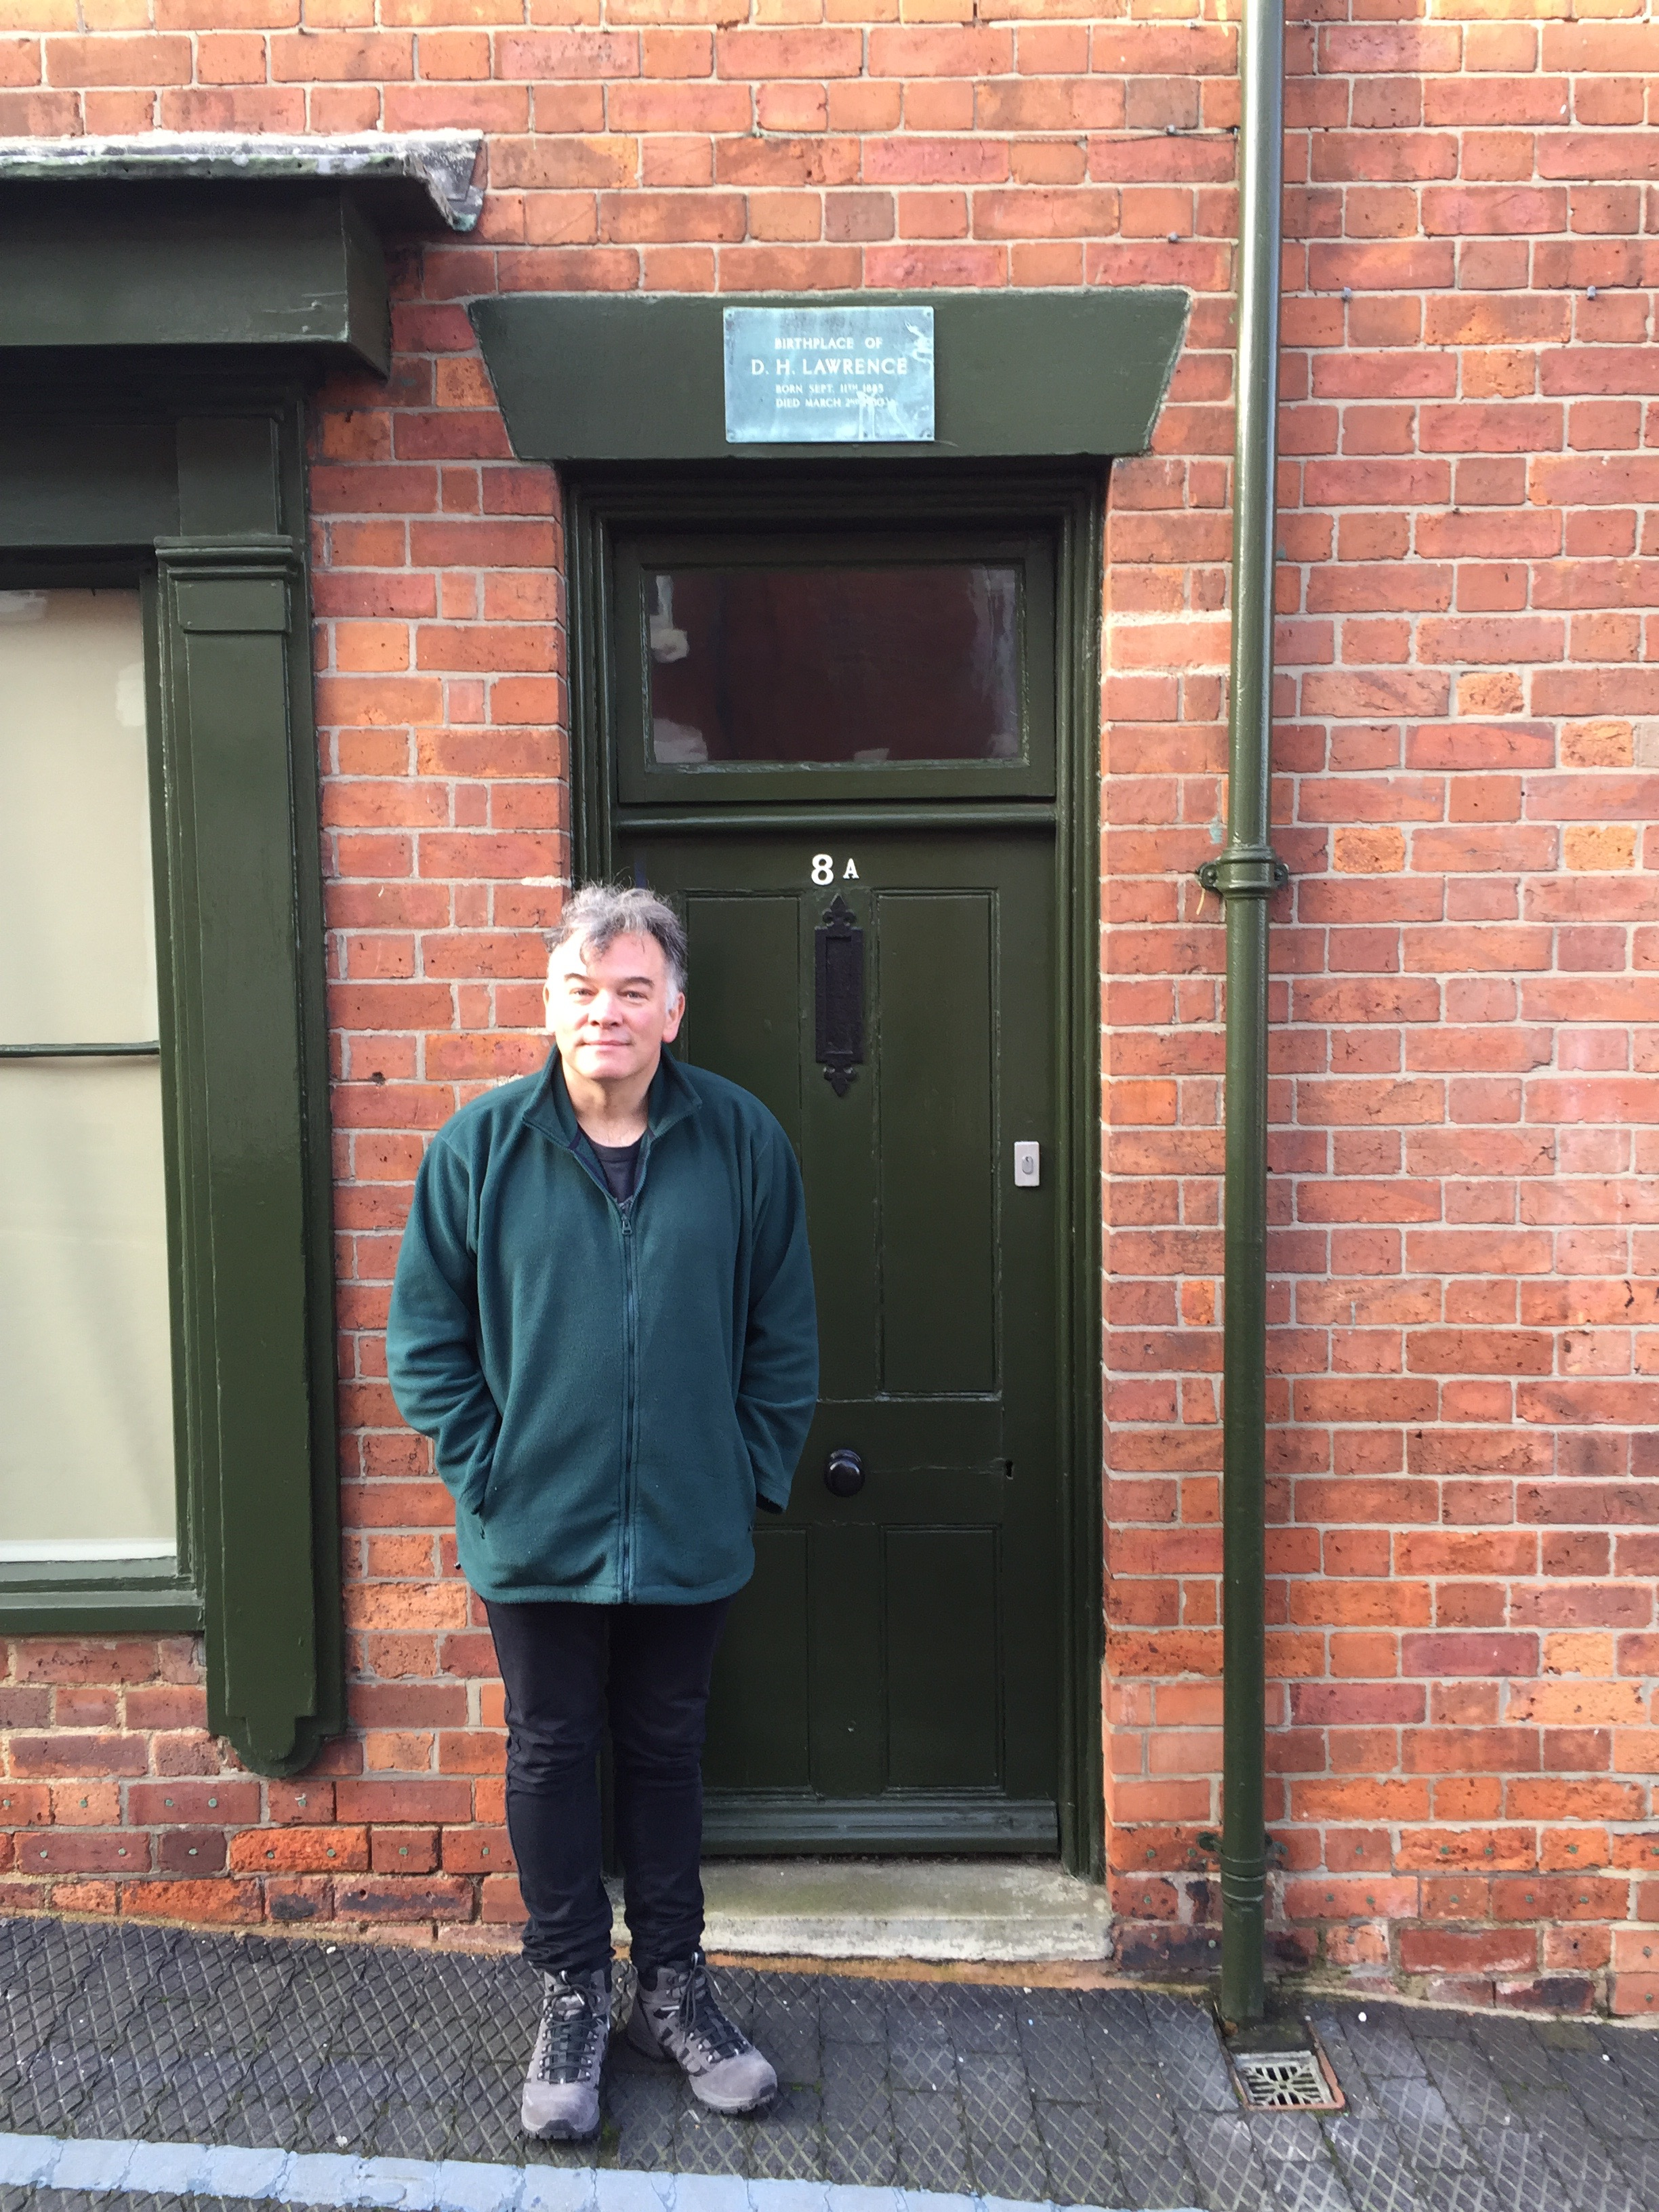 January 2016 - At the birthplace of D H Lawrence, Eastwood, Notts